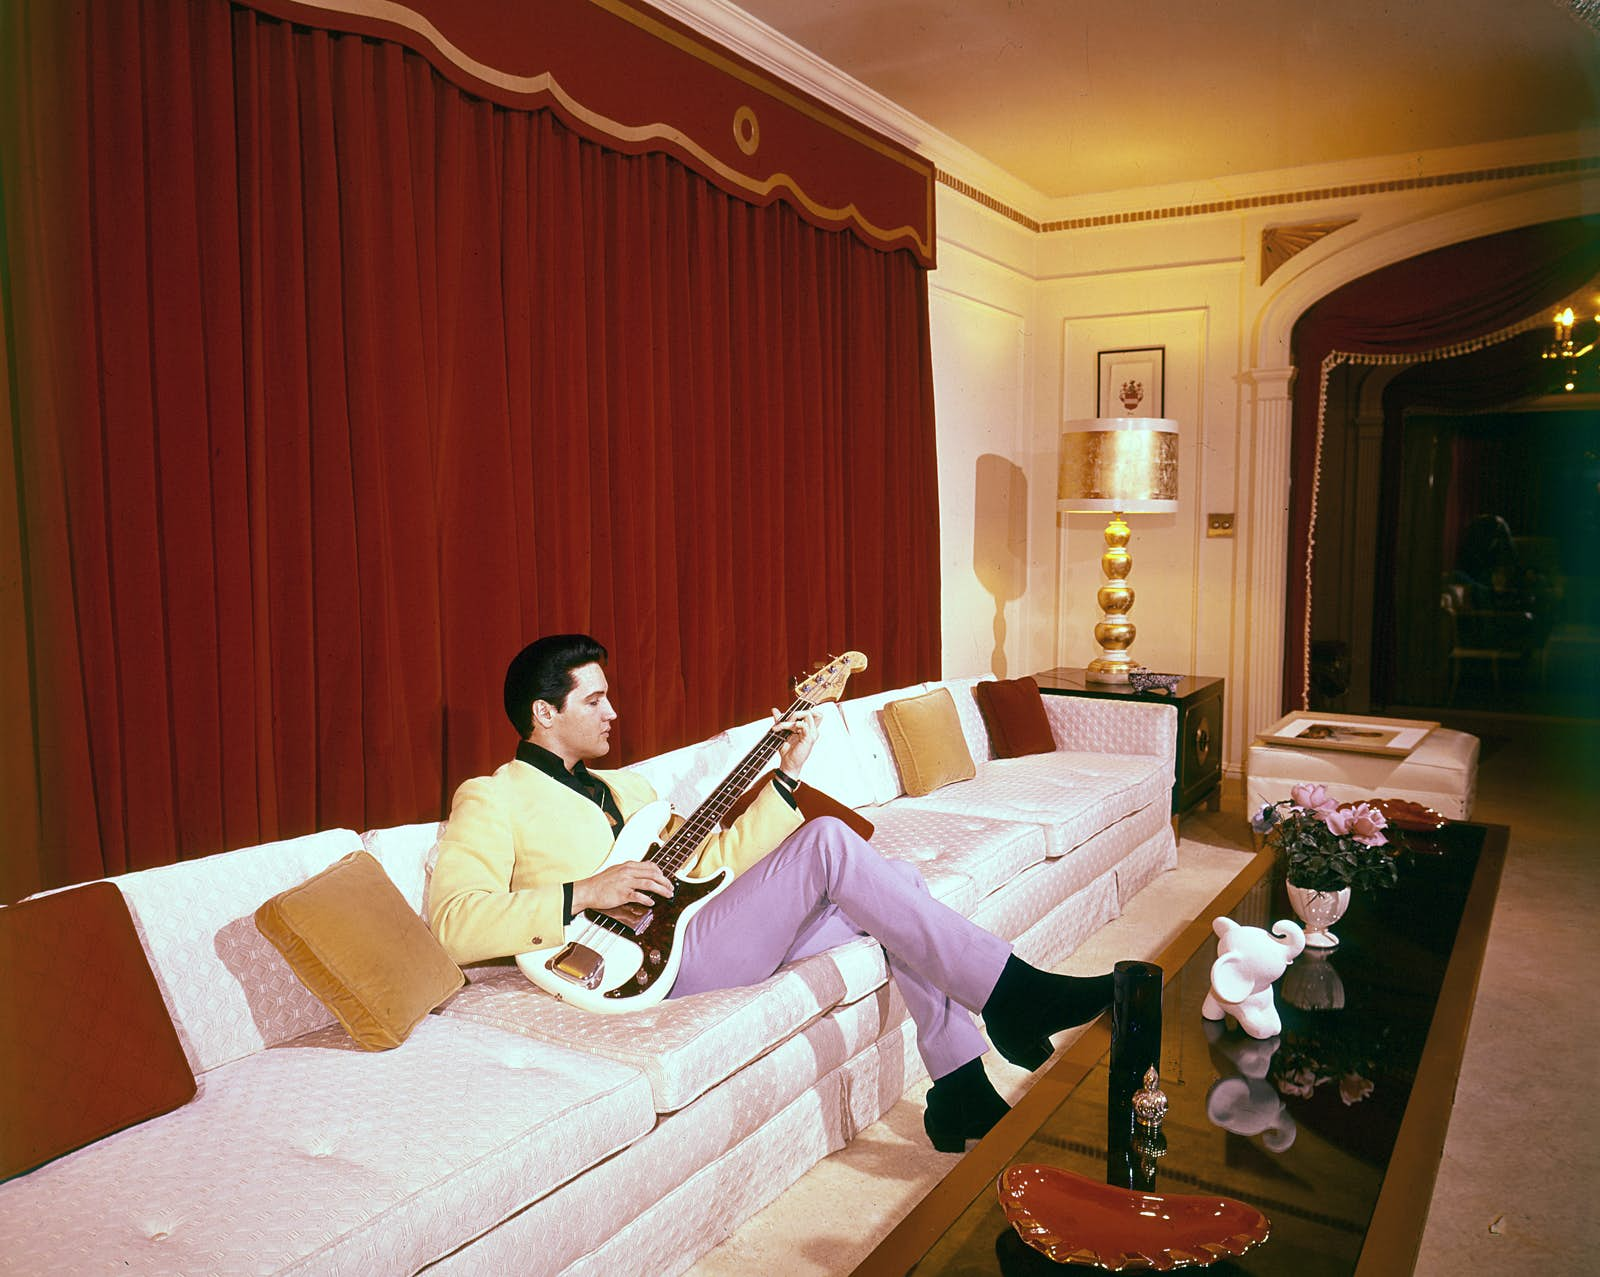 Elvis sitting on a white couch with a bass guitar